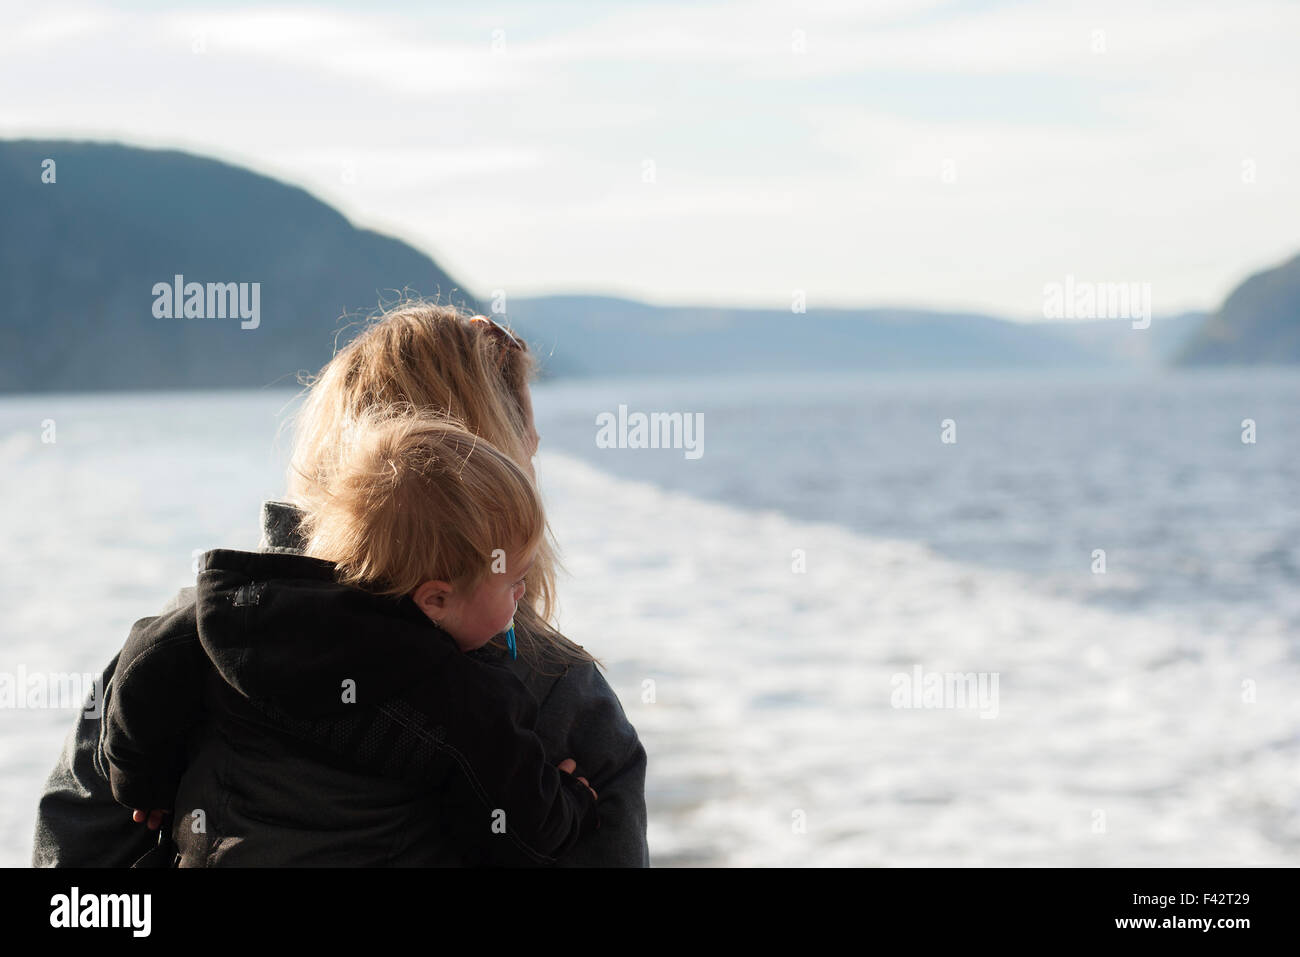 Mother and young son looking at tranquil lake view - Stock Image